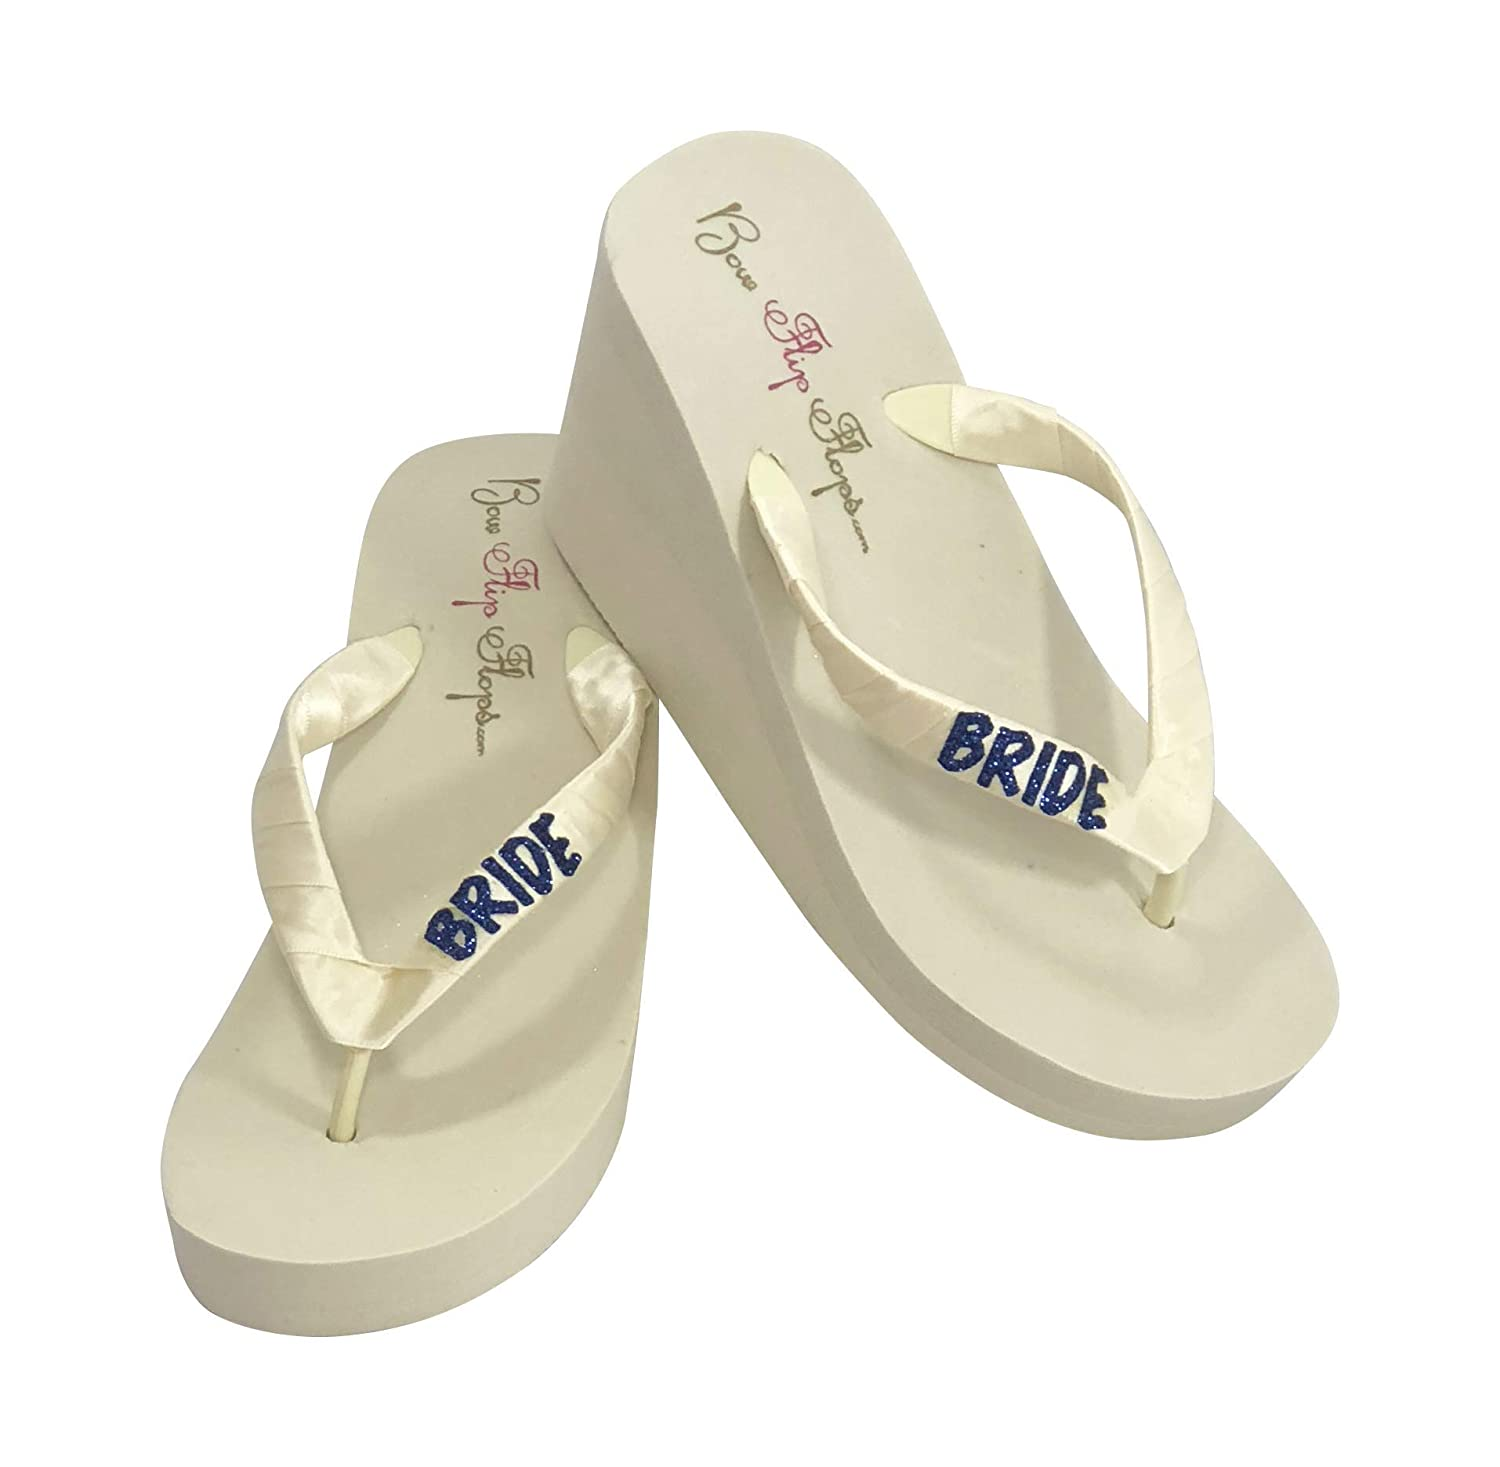 d921916bc6ee Amazon.com  Navy Glitter Cute Wedding Wedge Flip Flops with Bride on the  straps  Handmade